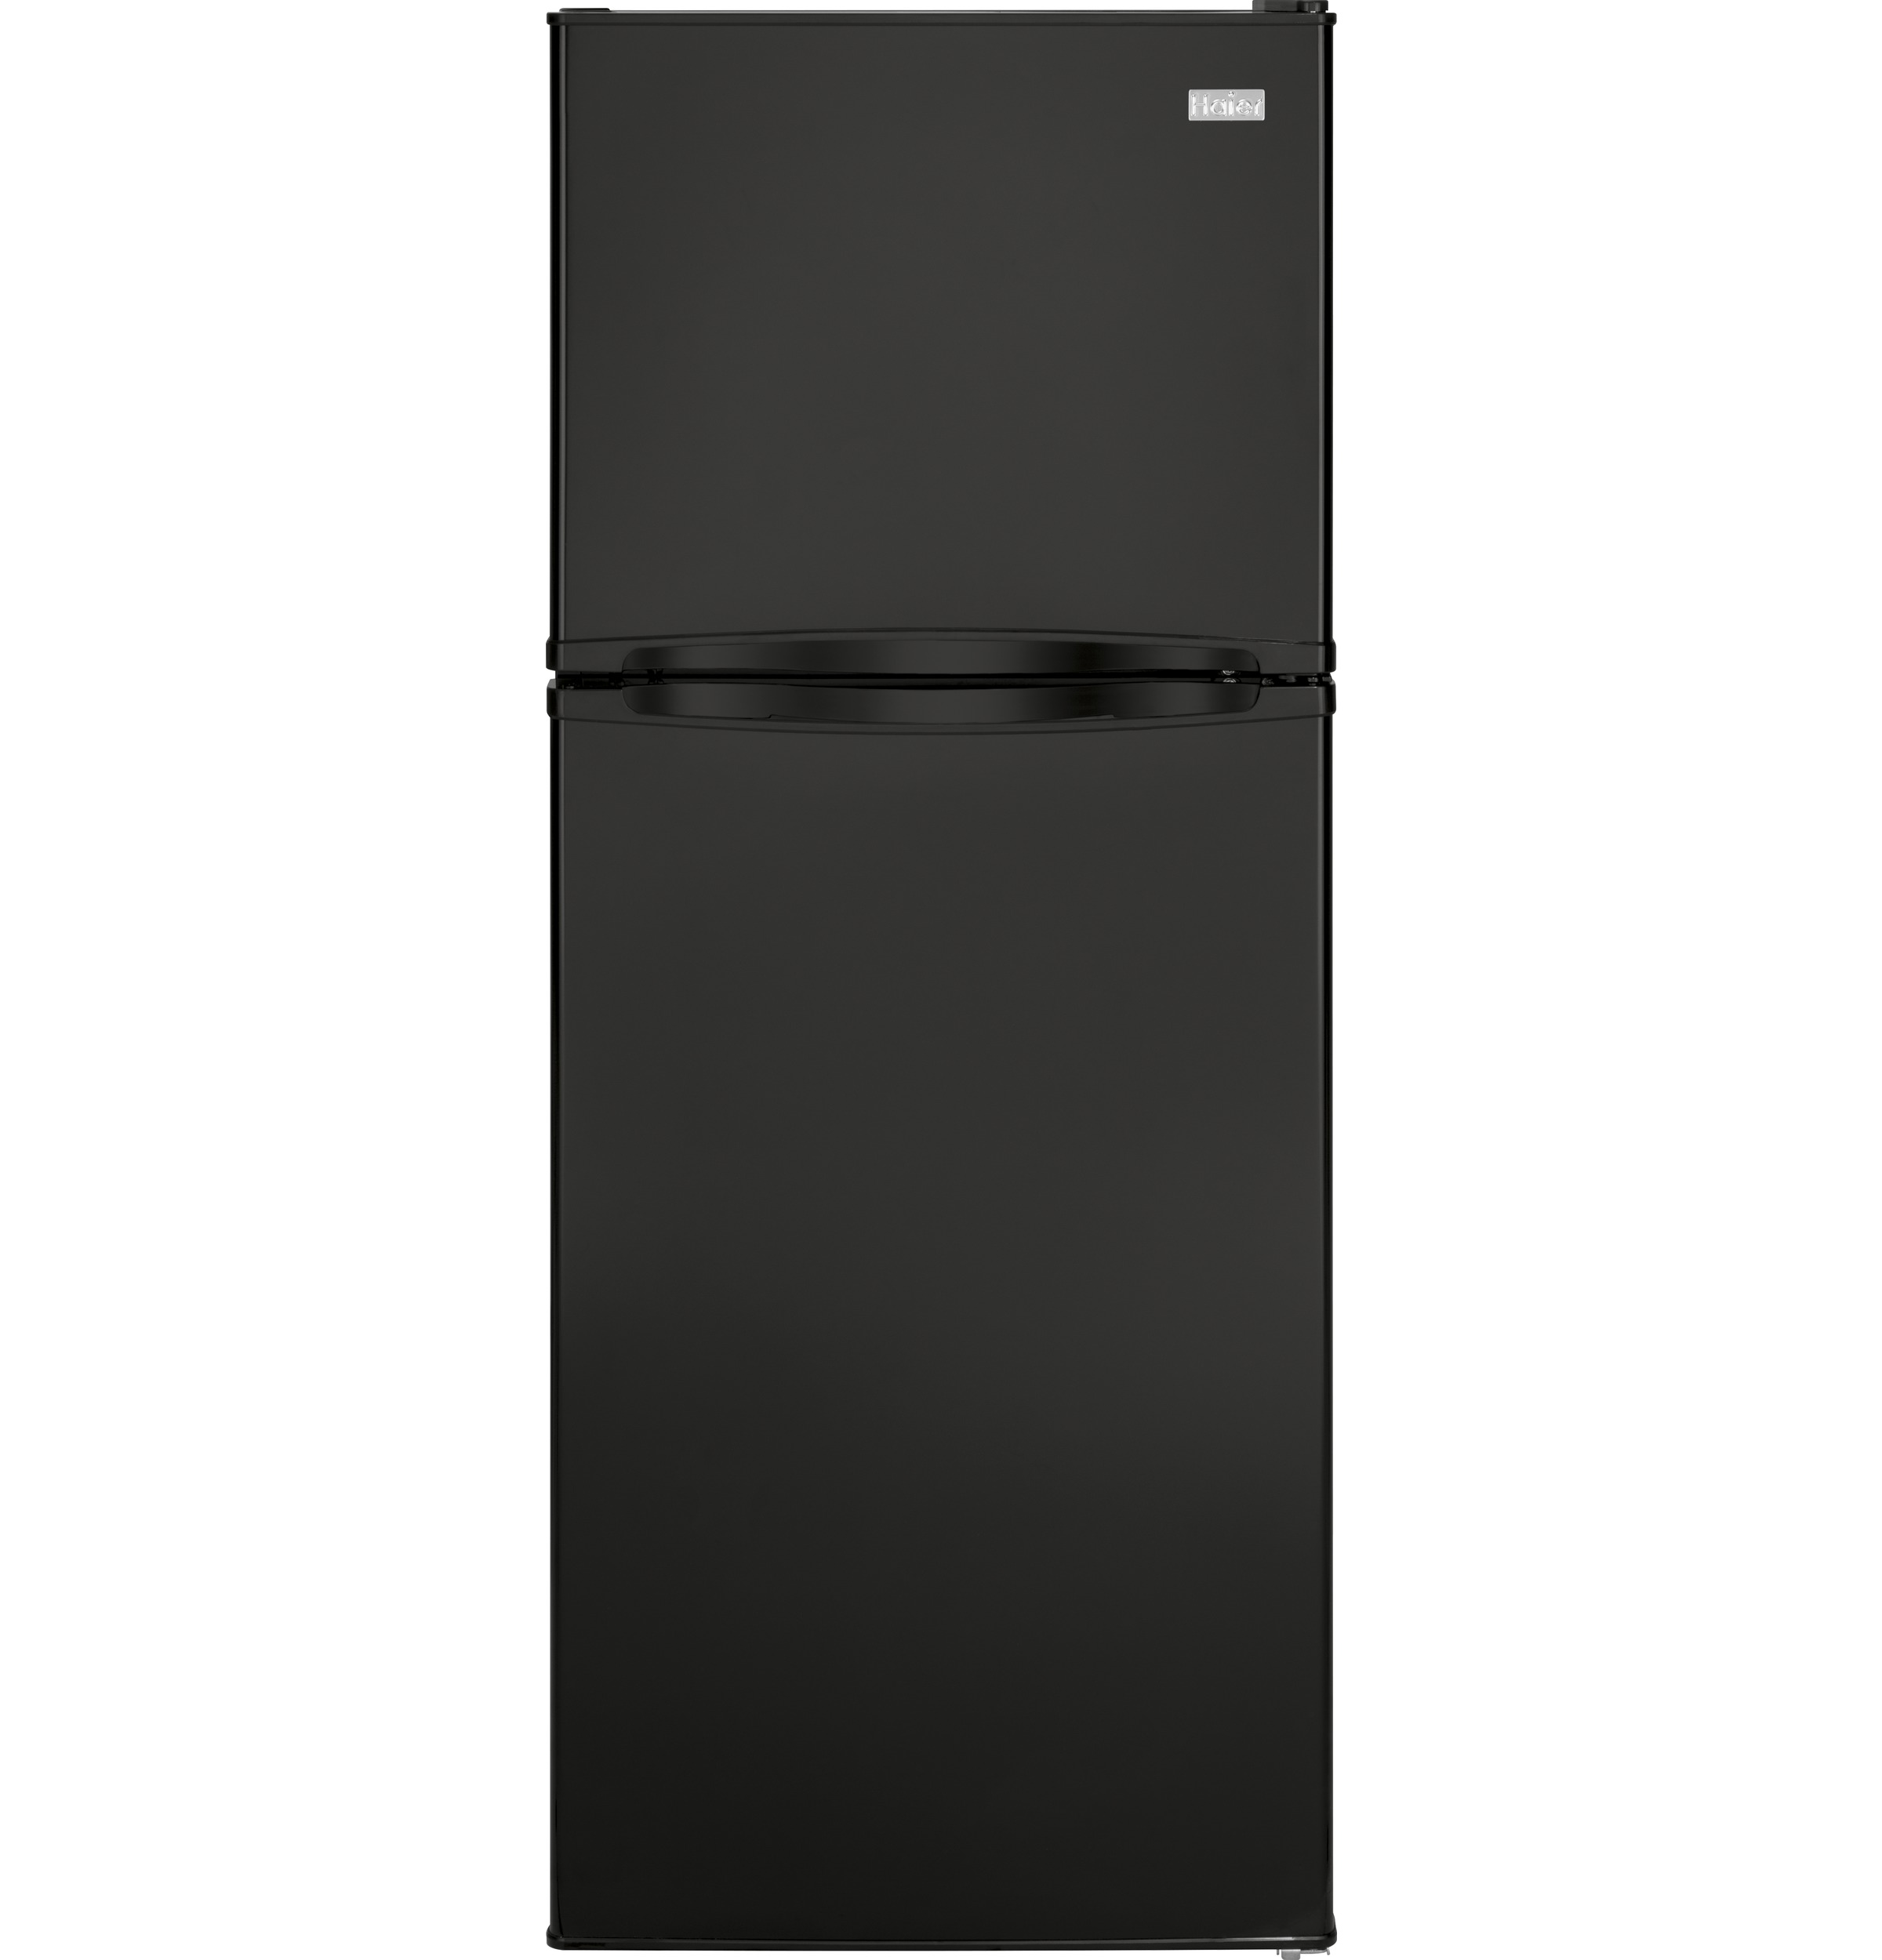 Haier 9.8 Cu. Ft. Top Freezer Refrigerator